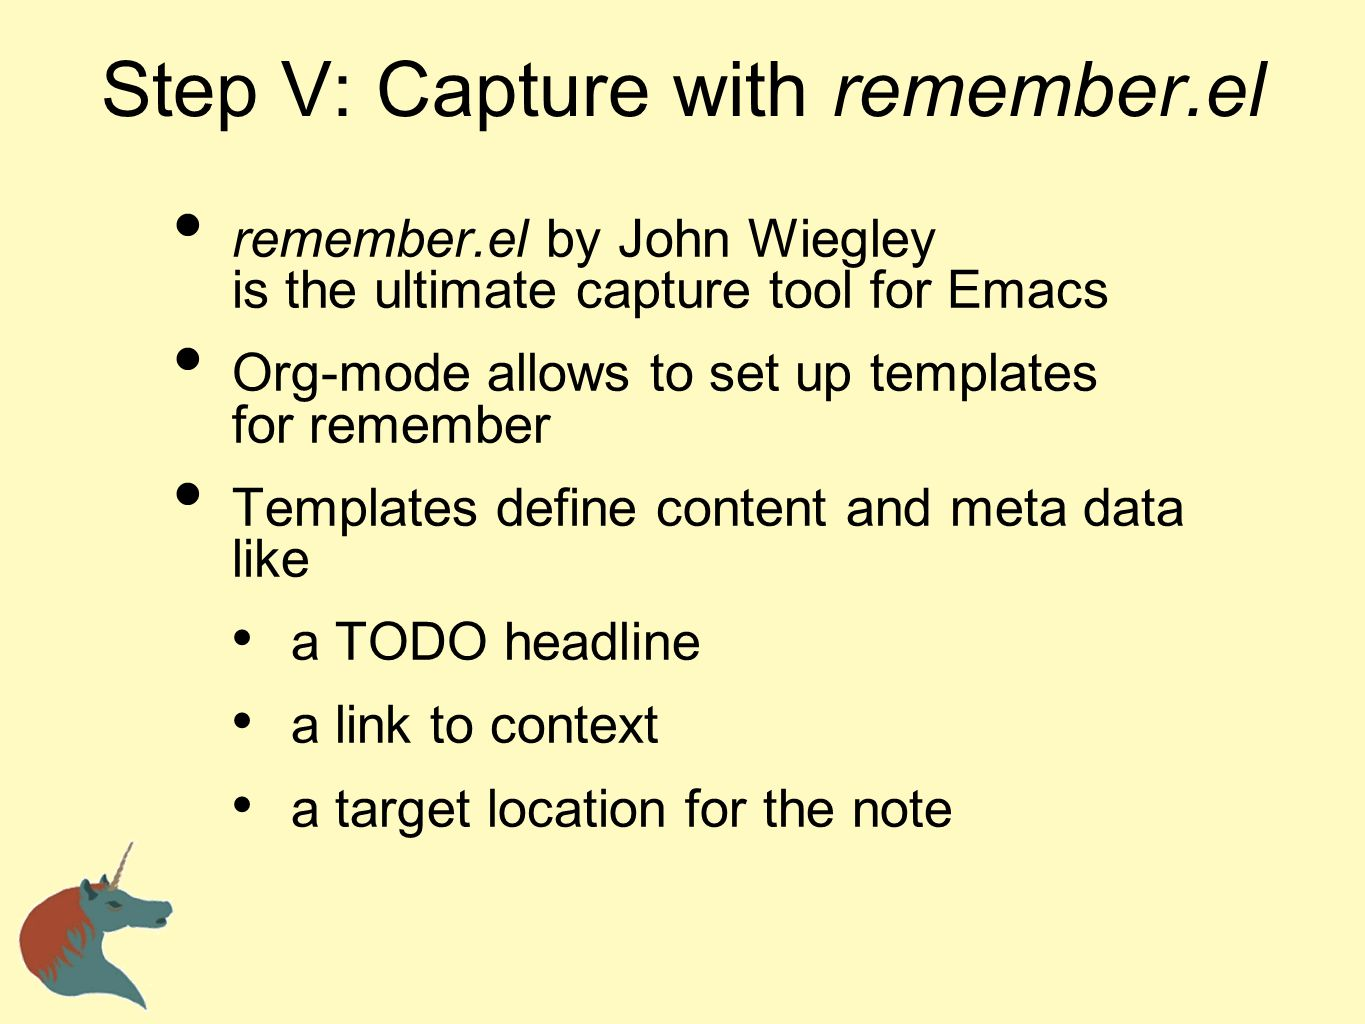 Step V: Capture with remember.el